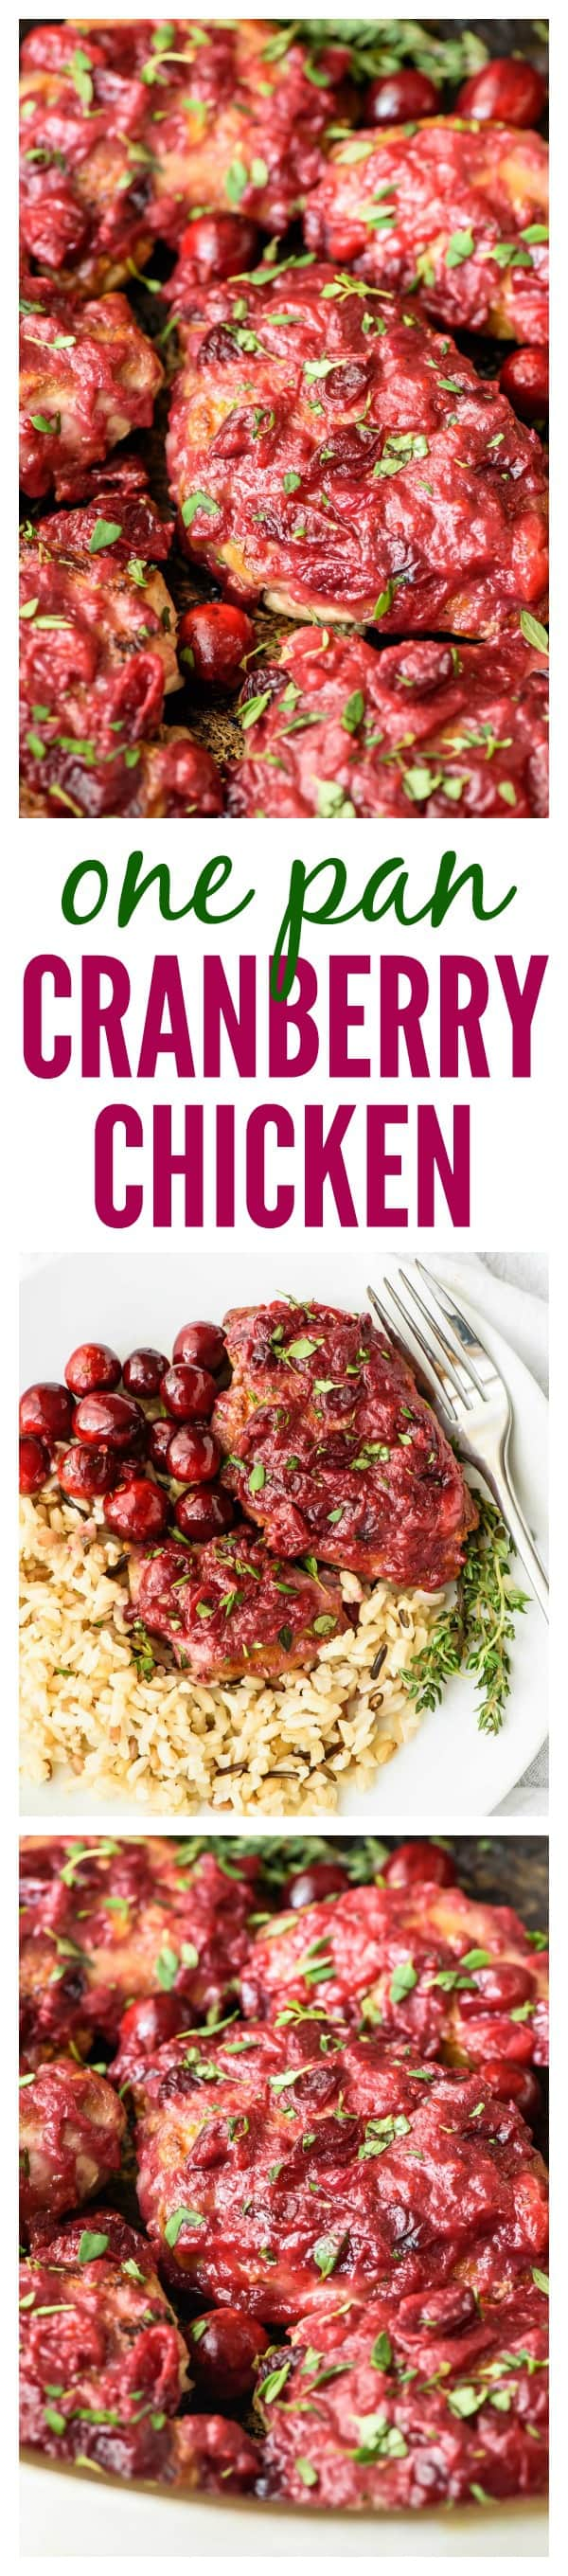 One Pan Cranberry Chicken. Juicy chicken thighs with a sticky cranberry glaze. Sweet, tangy and ready in only 30 minutes! A delicious and healthy chicken dinner. #chicken #recipe #cranberries #onepan